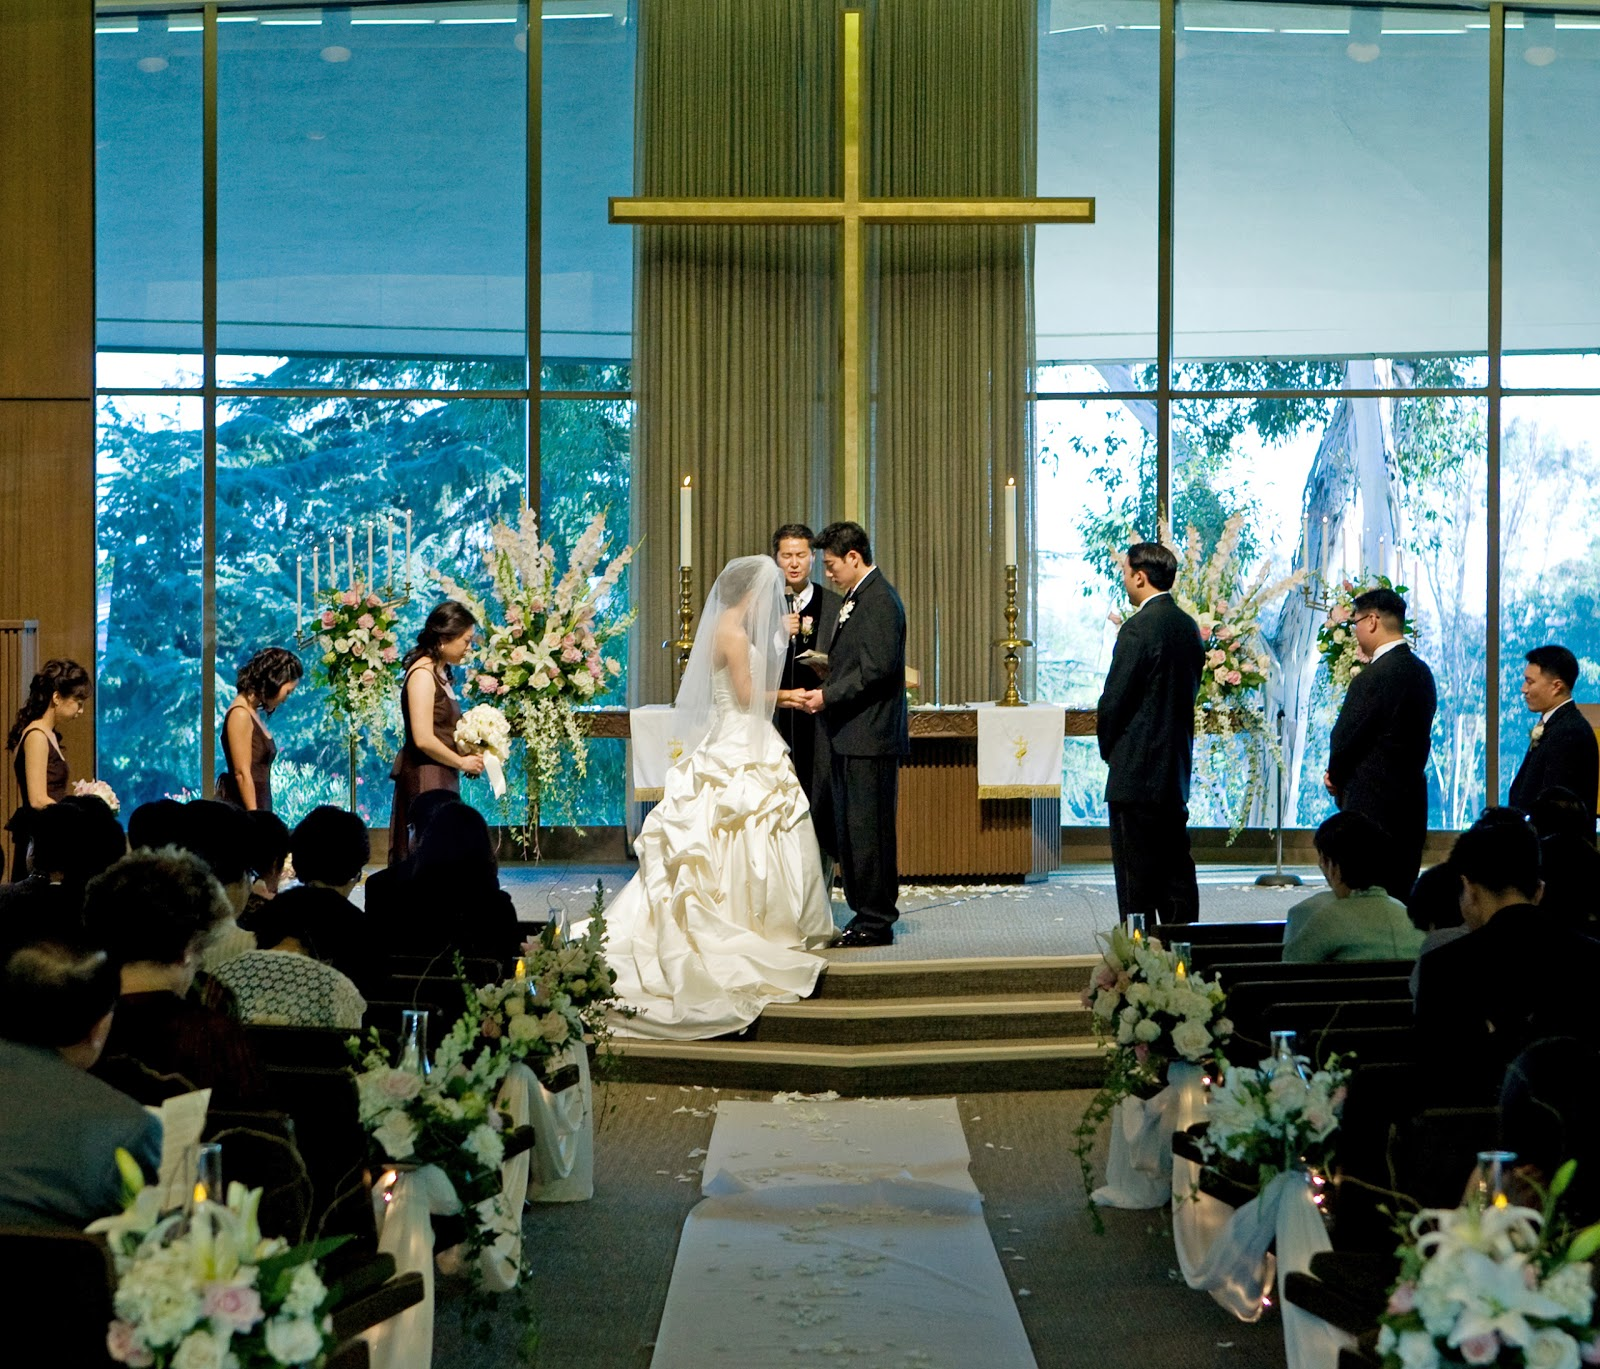 Declining Numbers In Catholic Church Wedding